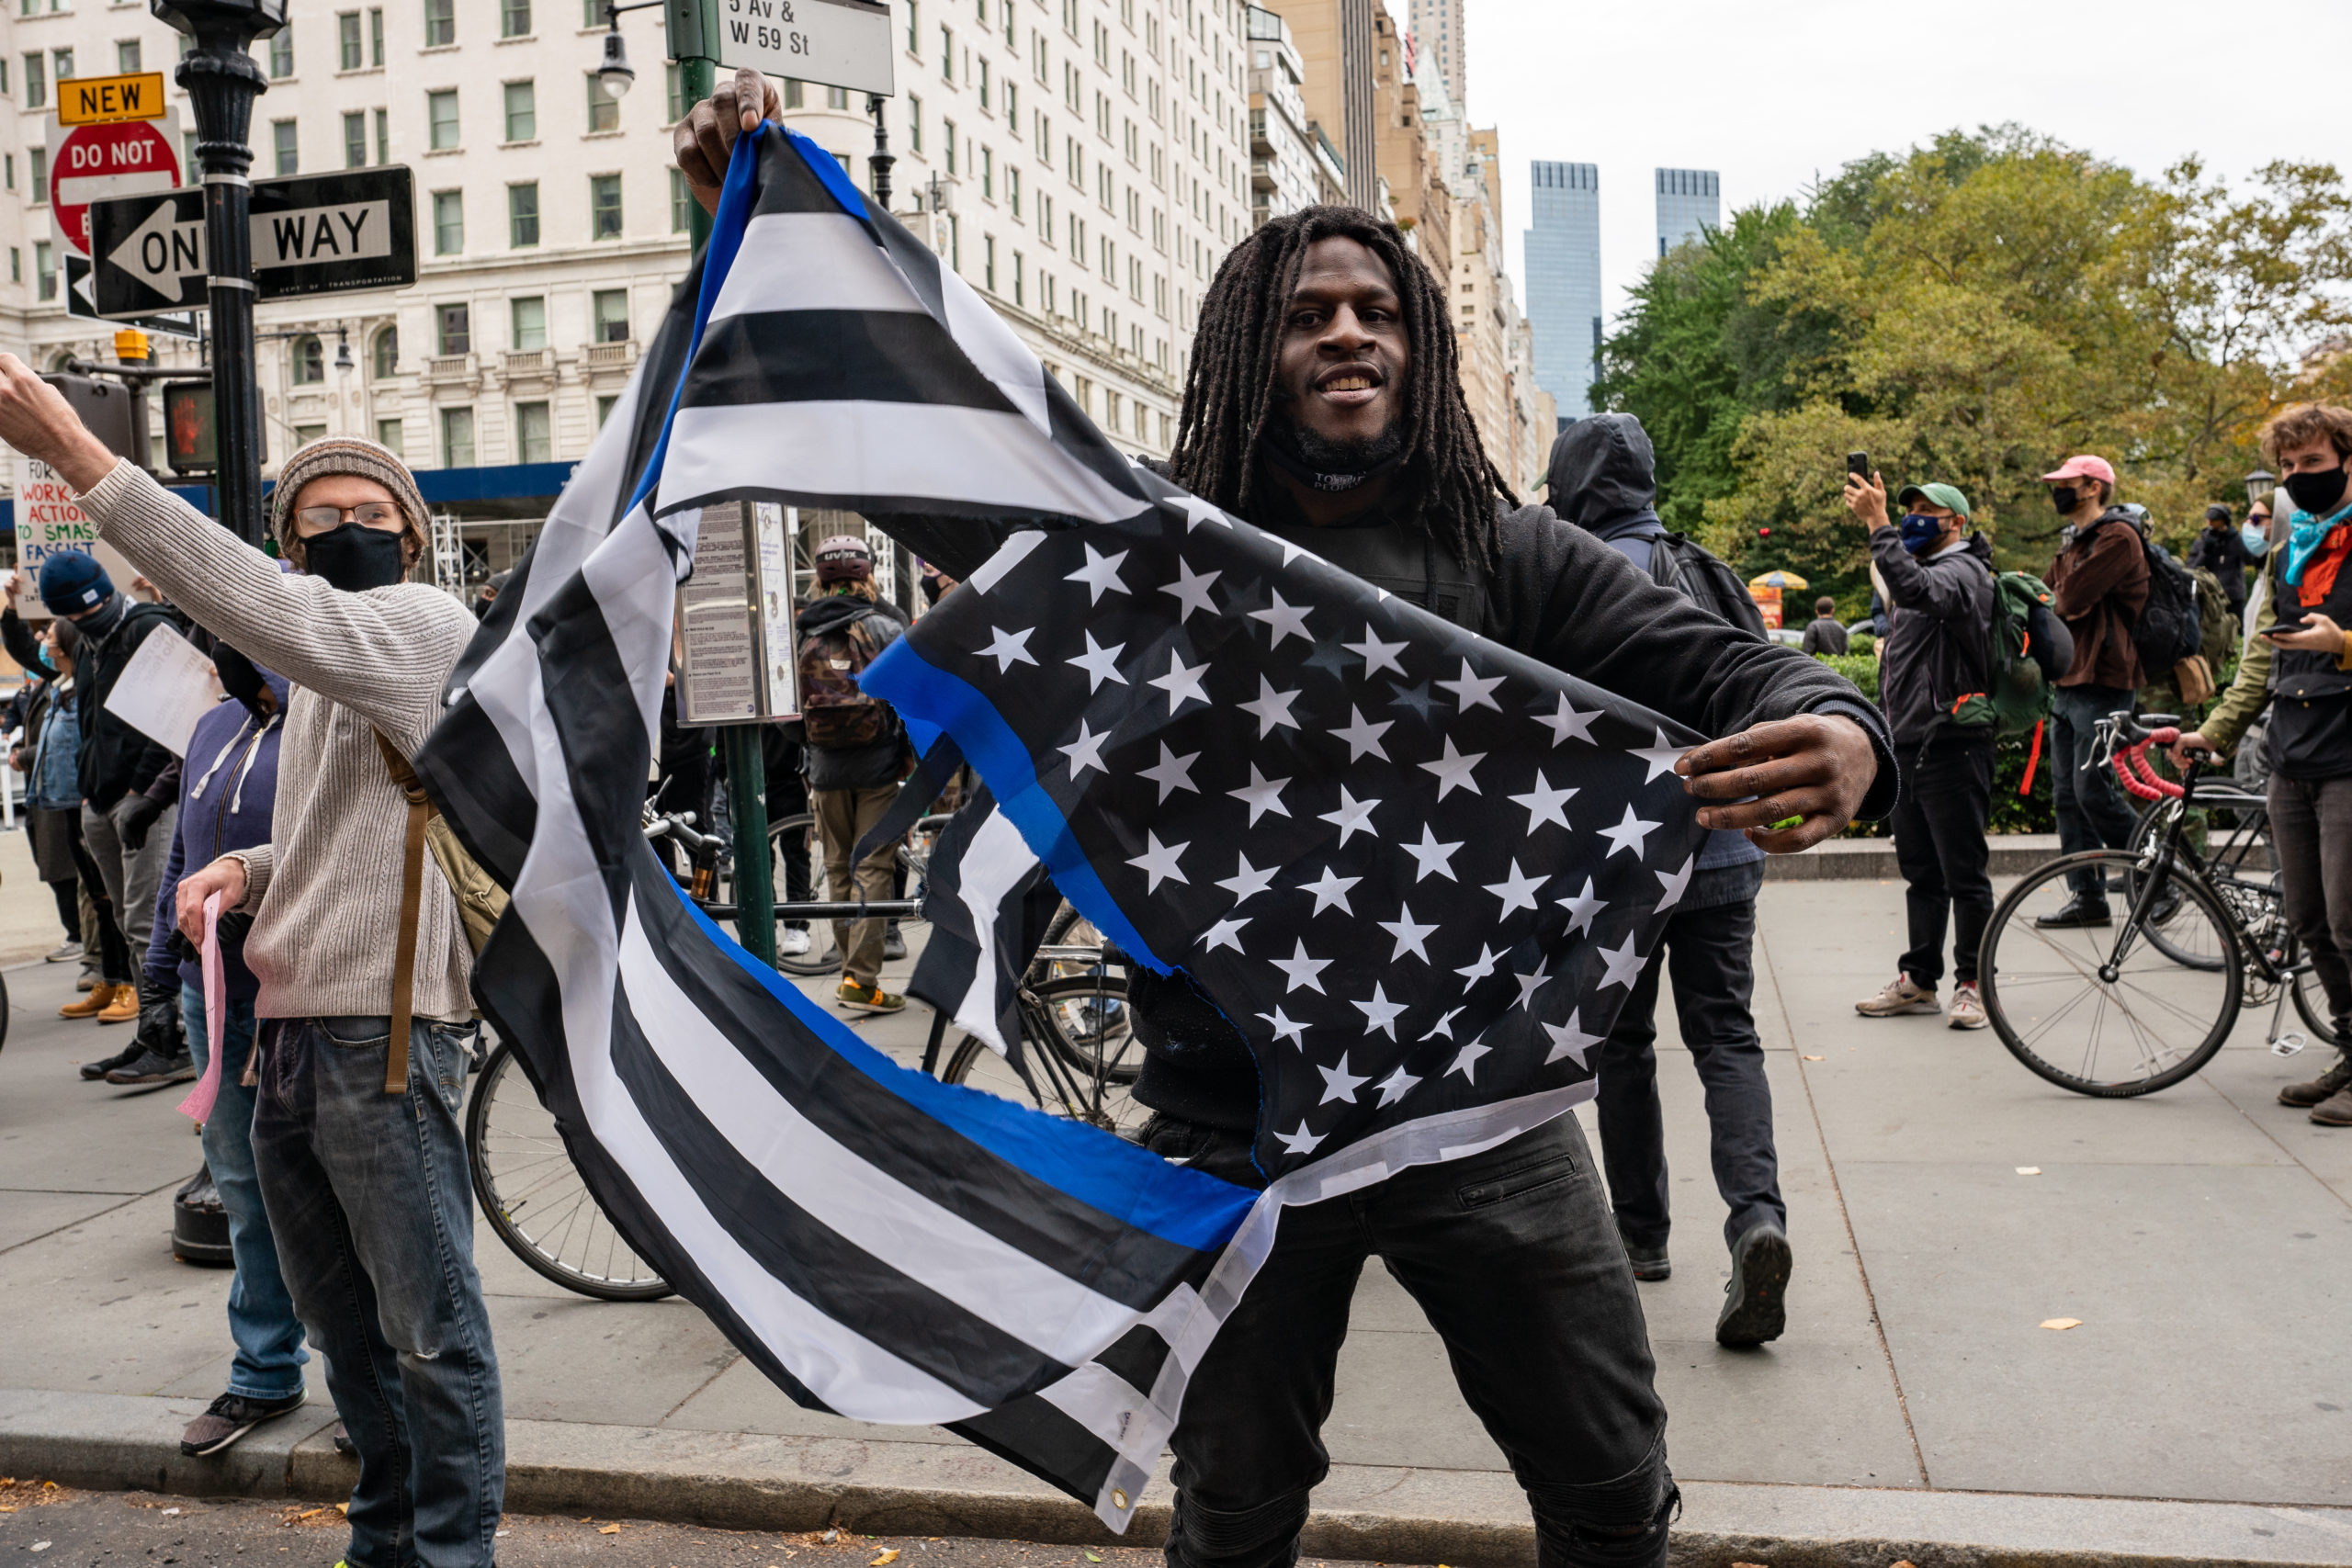 NEW YORK, NY - OCTOBER 25: A person holds a torn thin blue line American flag at a march and rally for President Donald Trump on 5th Avenue on October 25, 2020 in New York City. As the November 3rd presidential election nears, Trump supporters and protestors have taken to the streets to be heard. (Photo by David Dee Delgado/Getty Images)